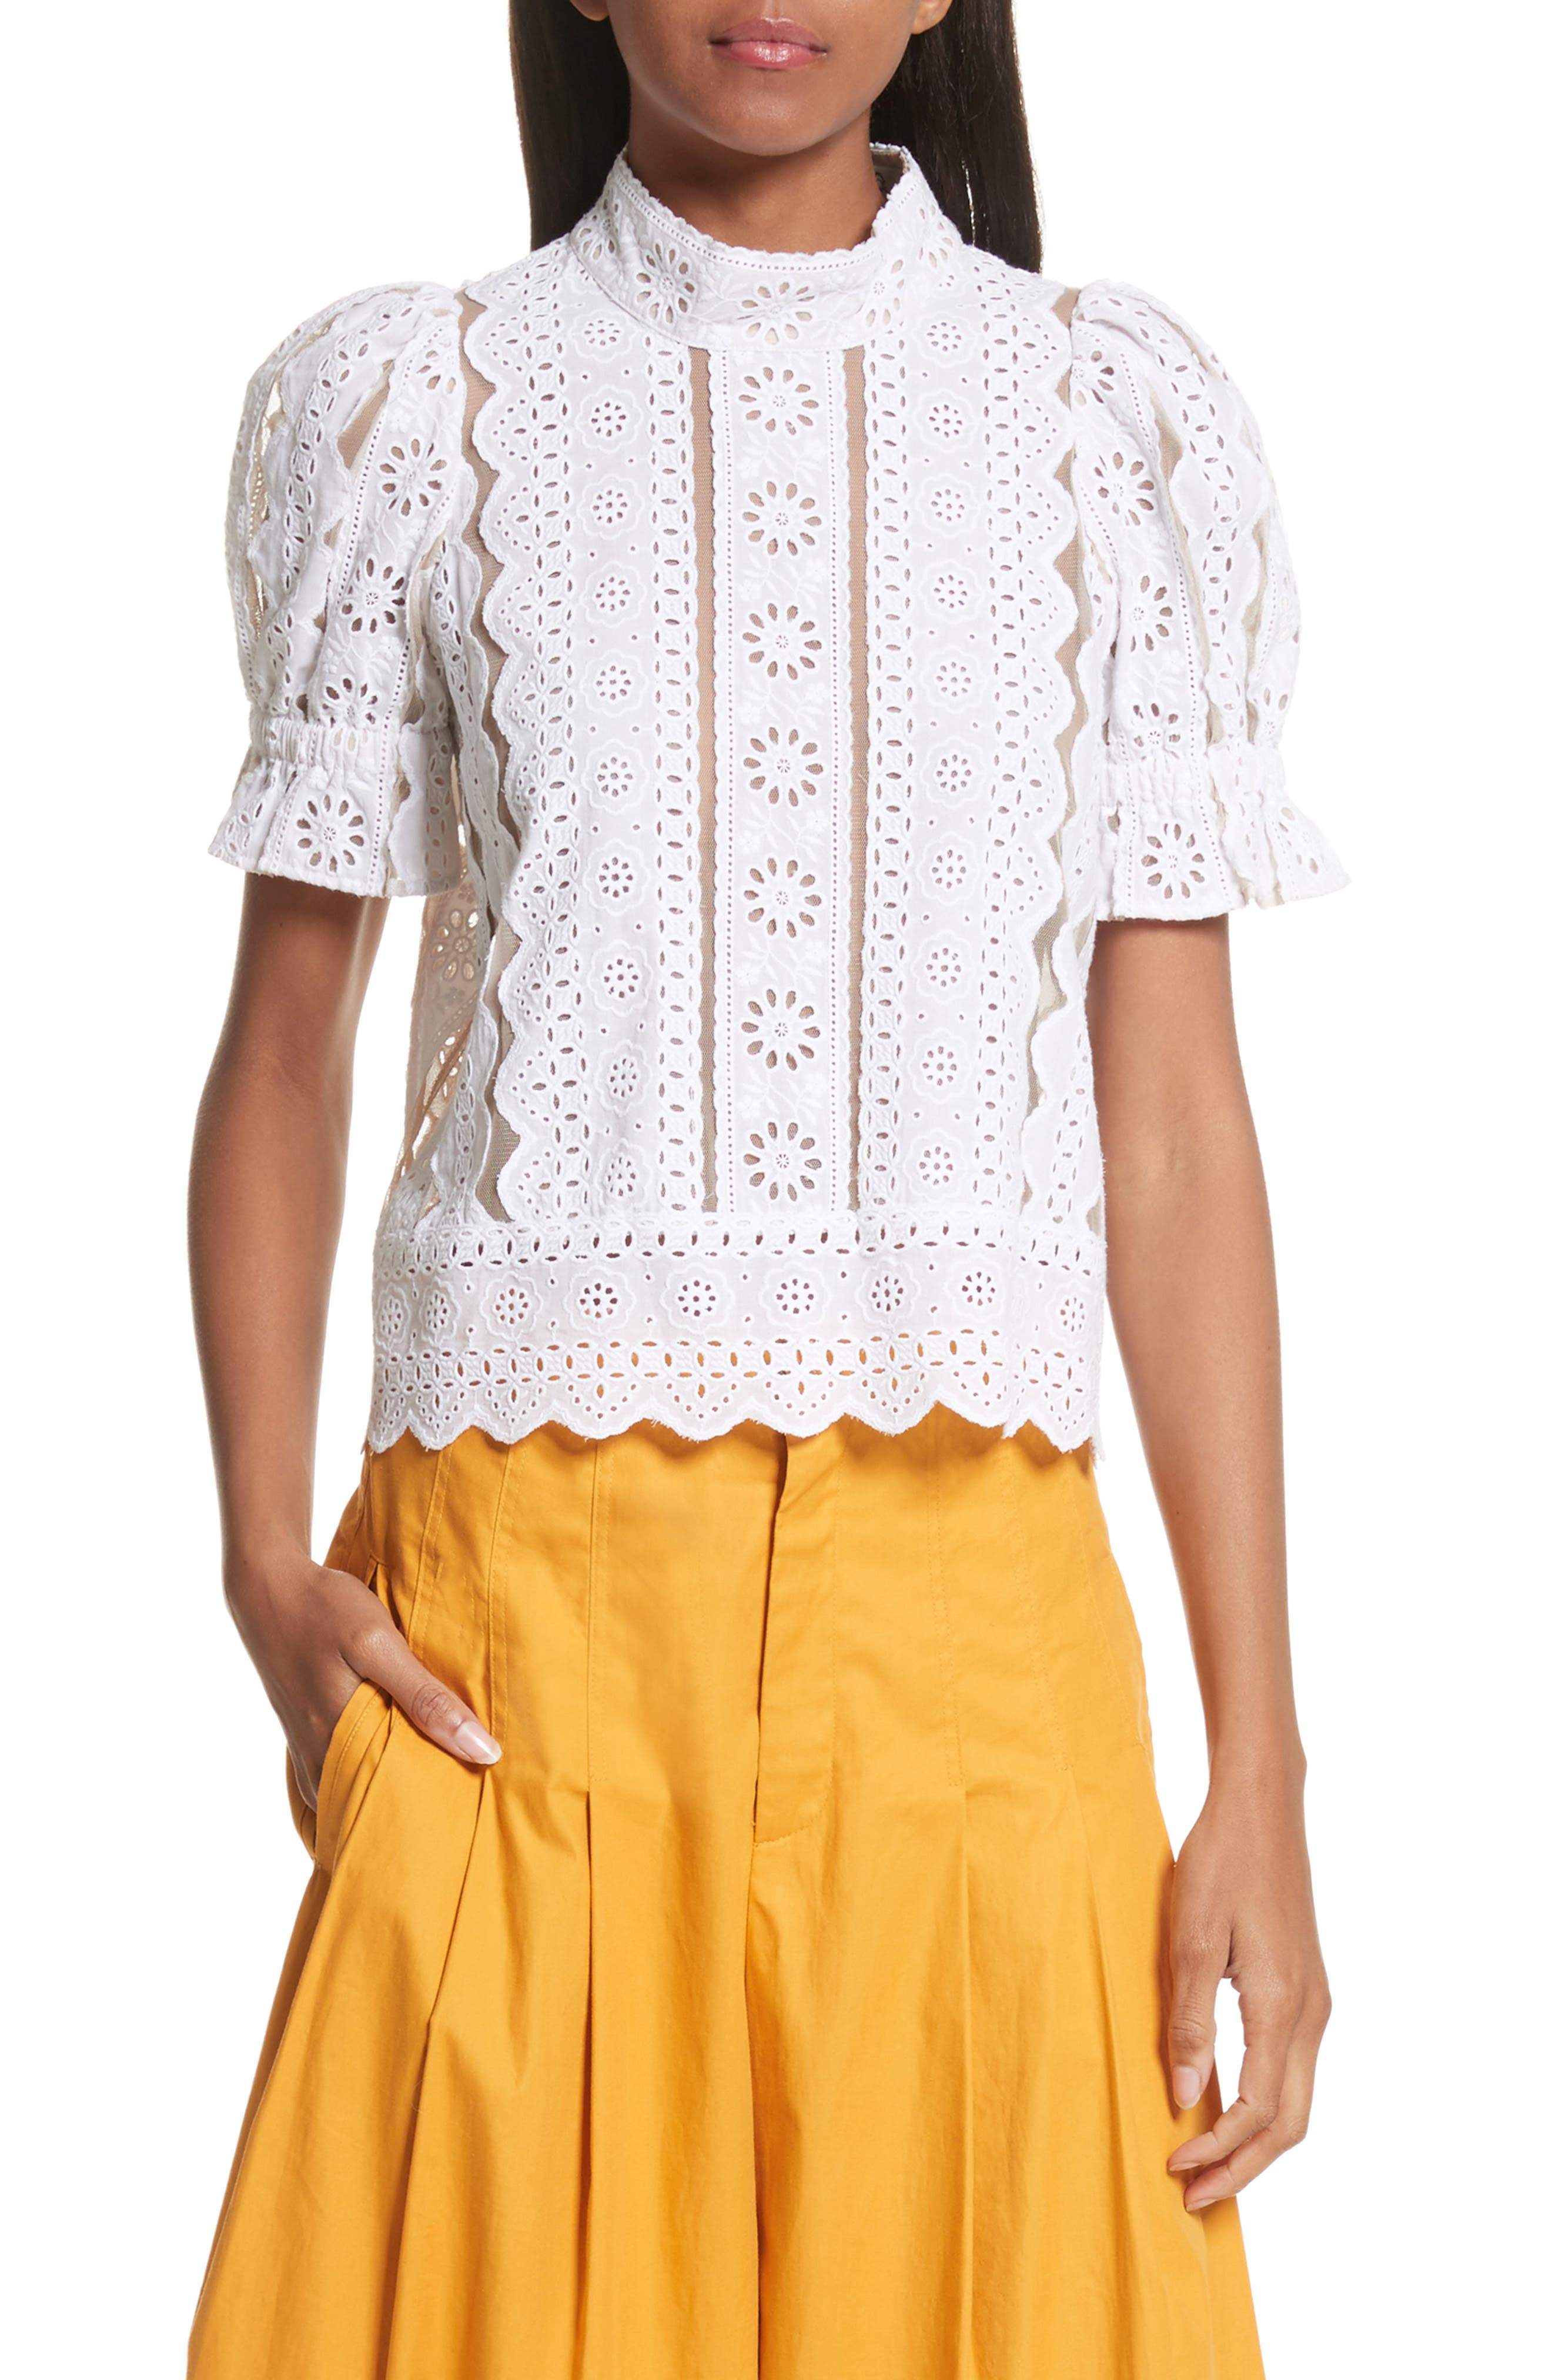 Luna Cotton Eyelet Top,                             Main thumbnail 1, color,                             White With Nude Mesh